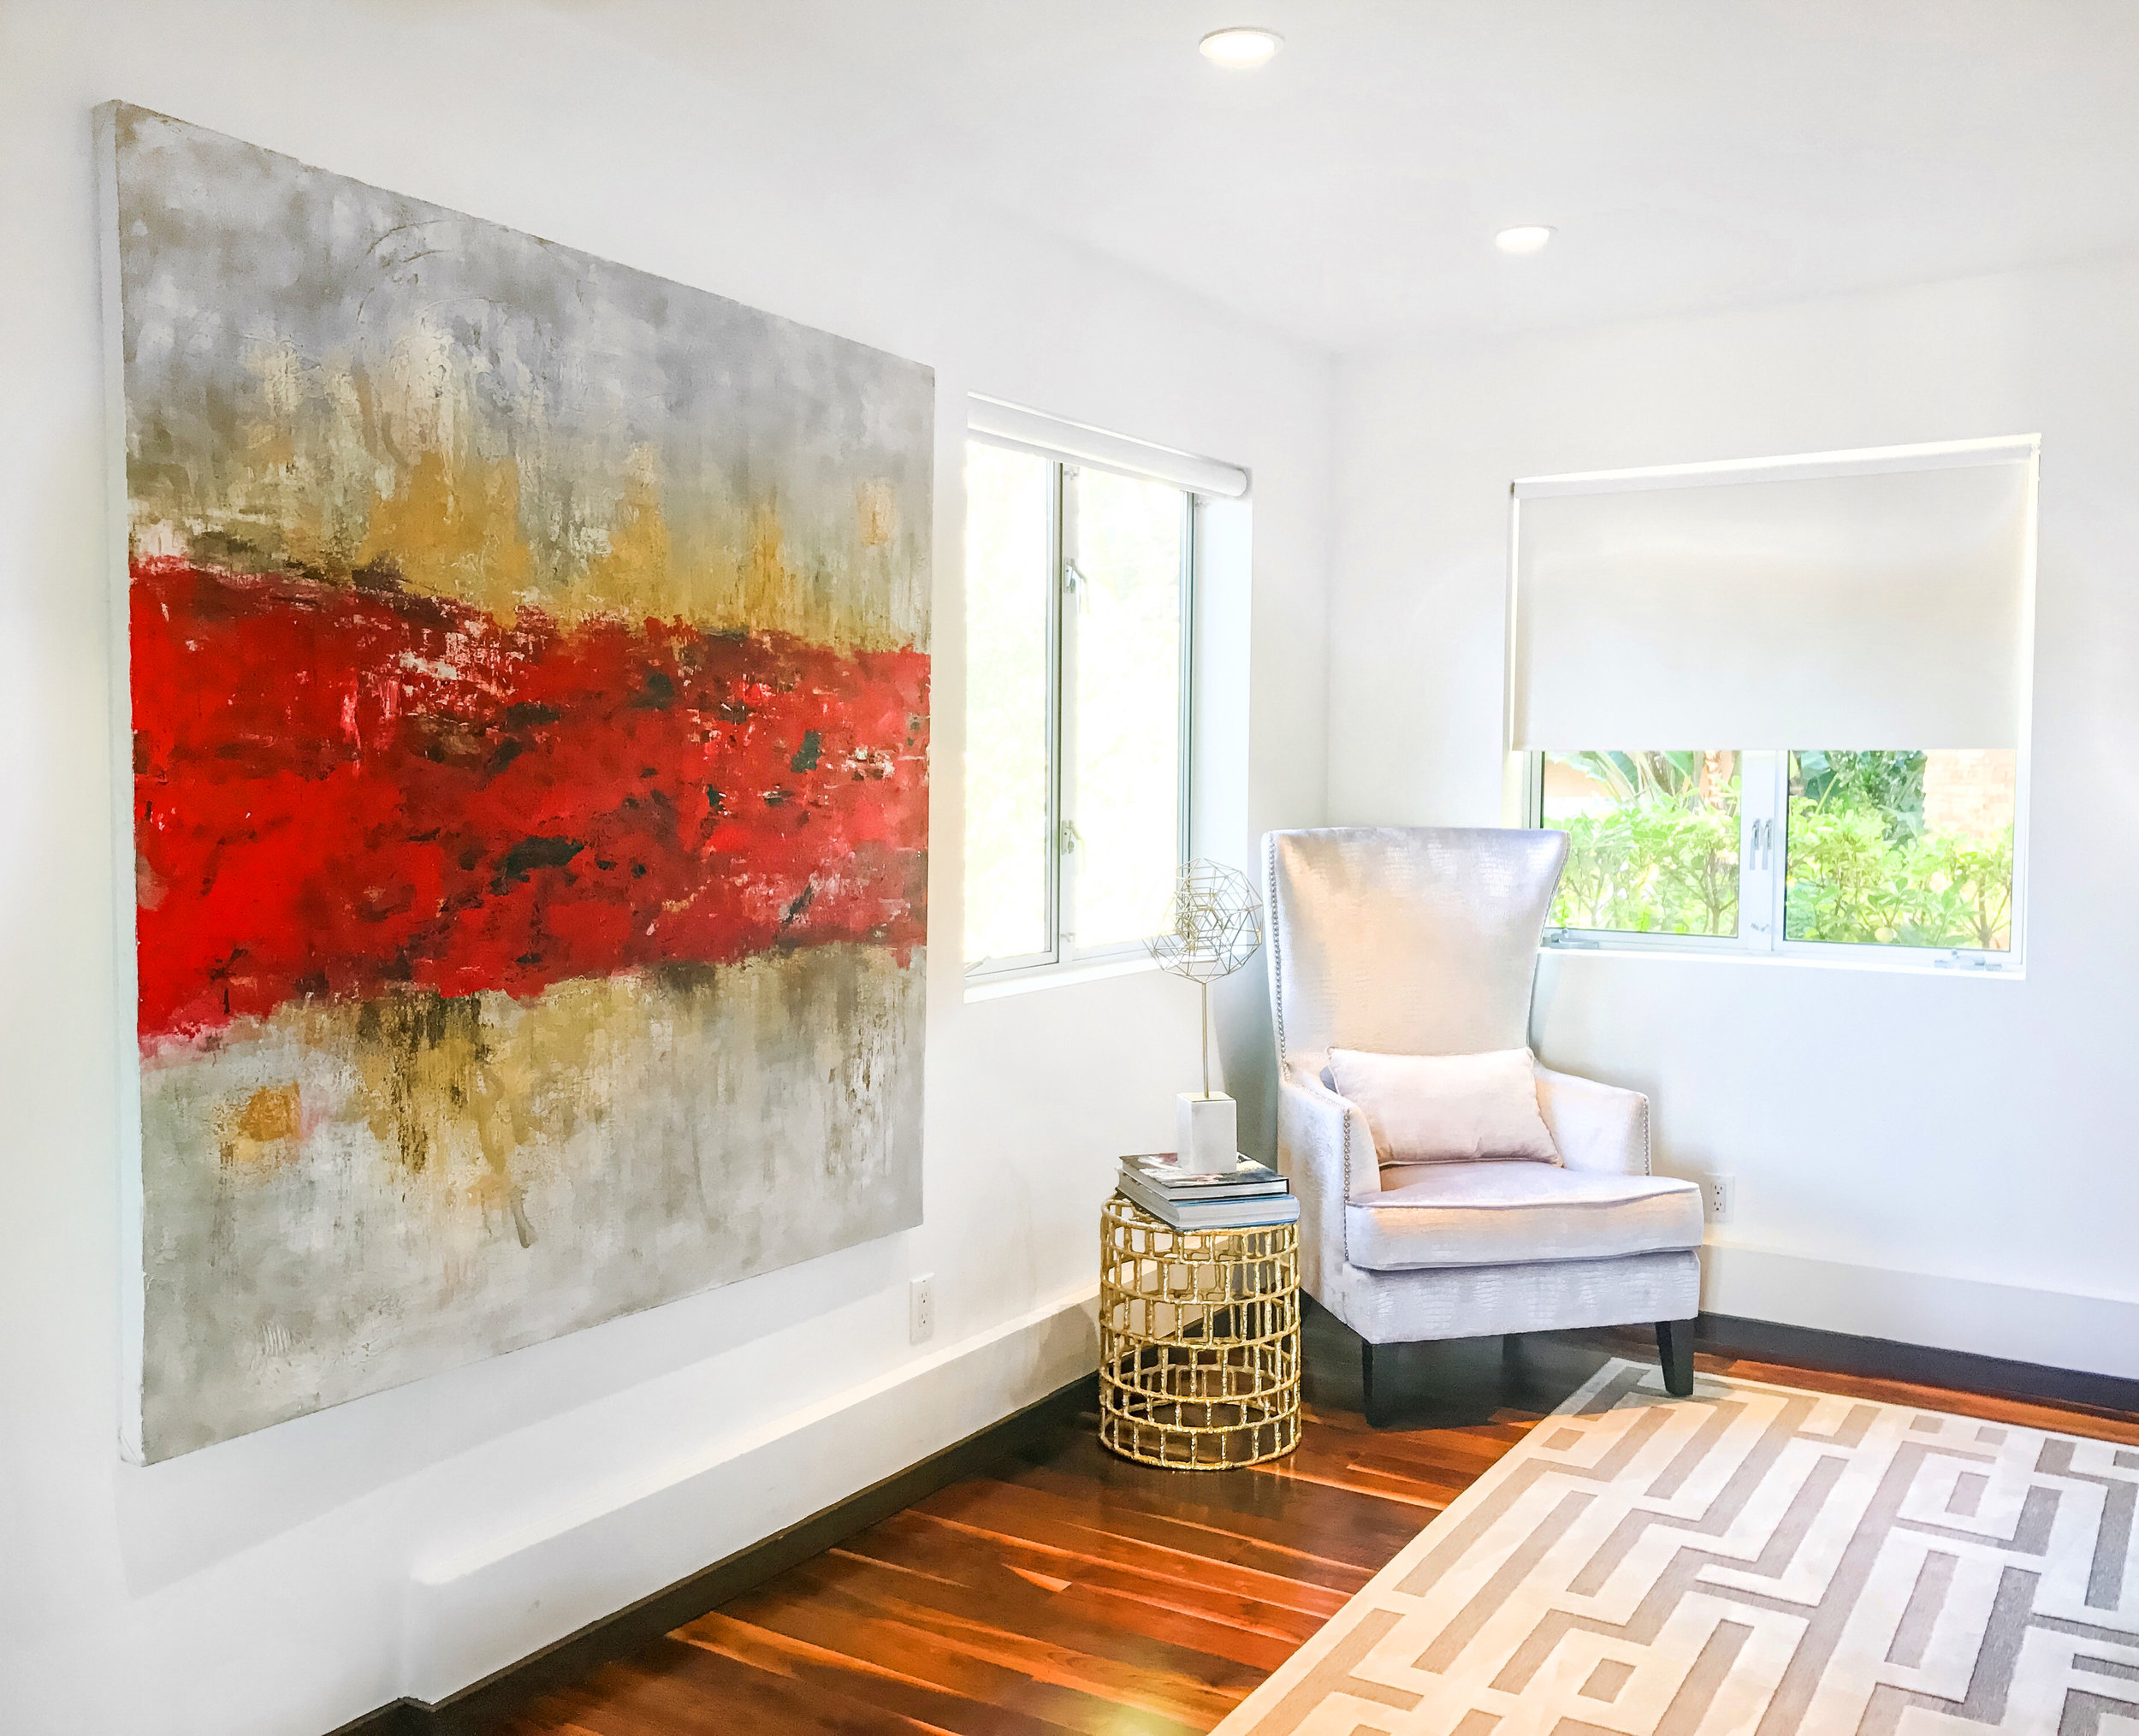 """""""That Red Track"""" - Available for Purchase - info@annmcferran.com"""